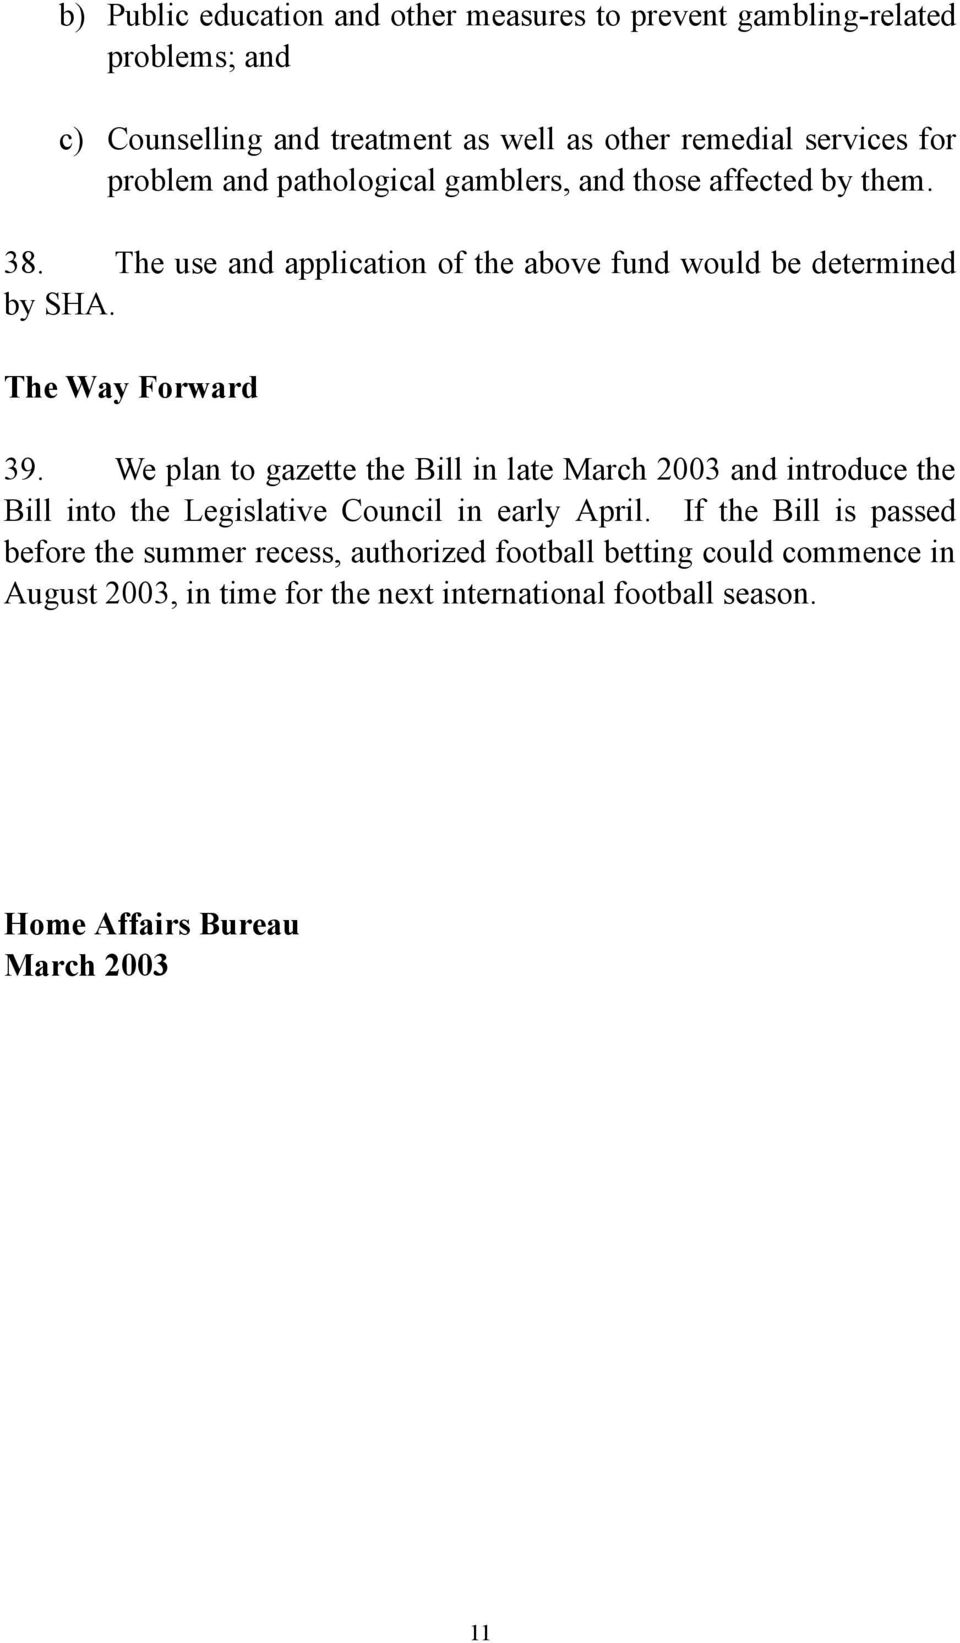 The Way Forward 39. We plan to gazette the Bill in late March 2003 and introduce the Bill into the Legislative Council in early April.